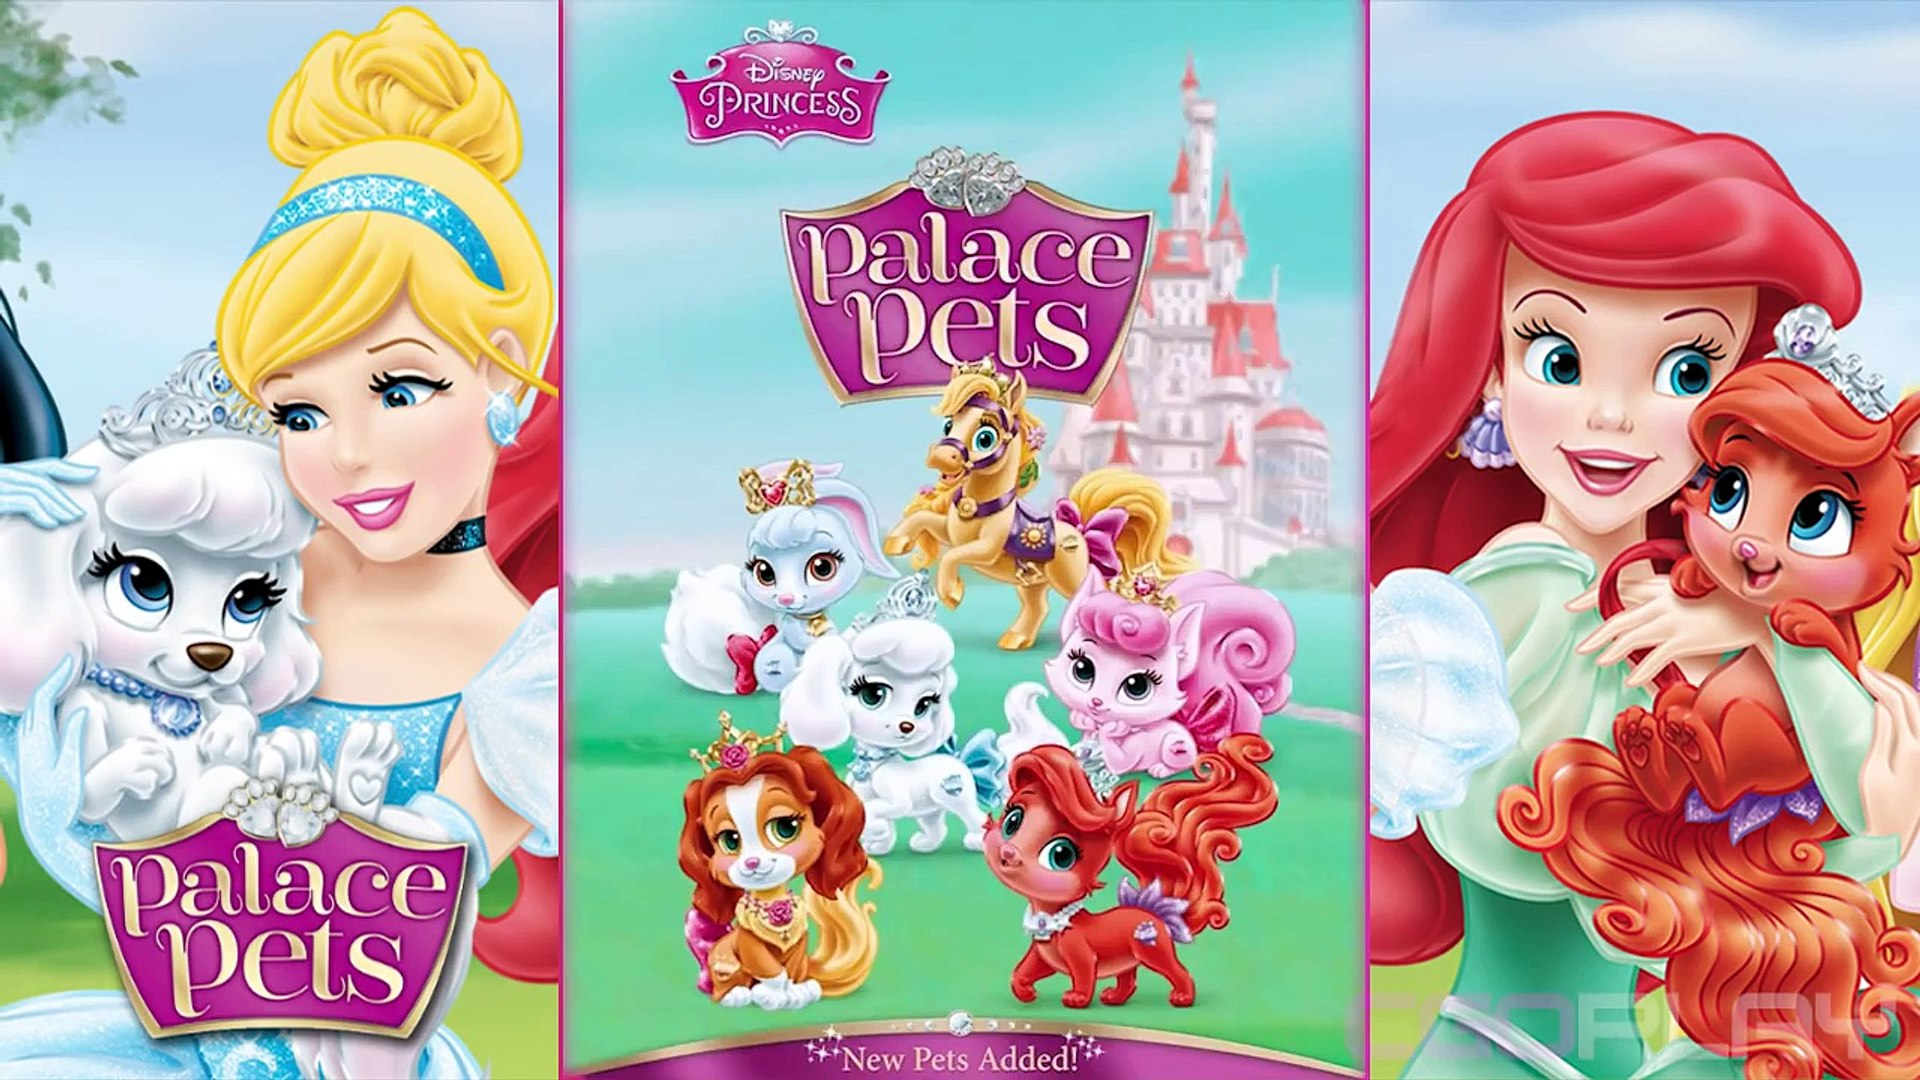 ♥ Disney Princess Palace Pets - Jasmine & Lapis NEW PET (Princess Palace Pets Game for Children)